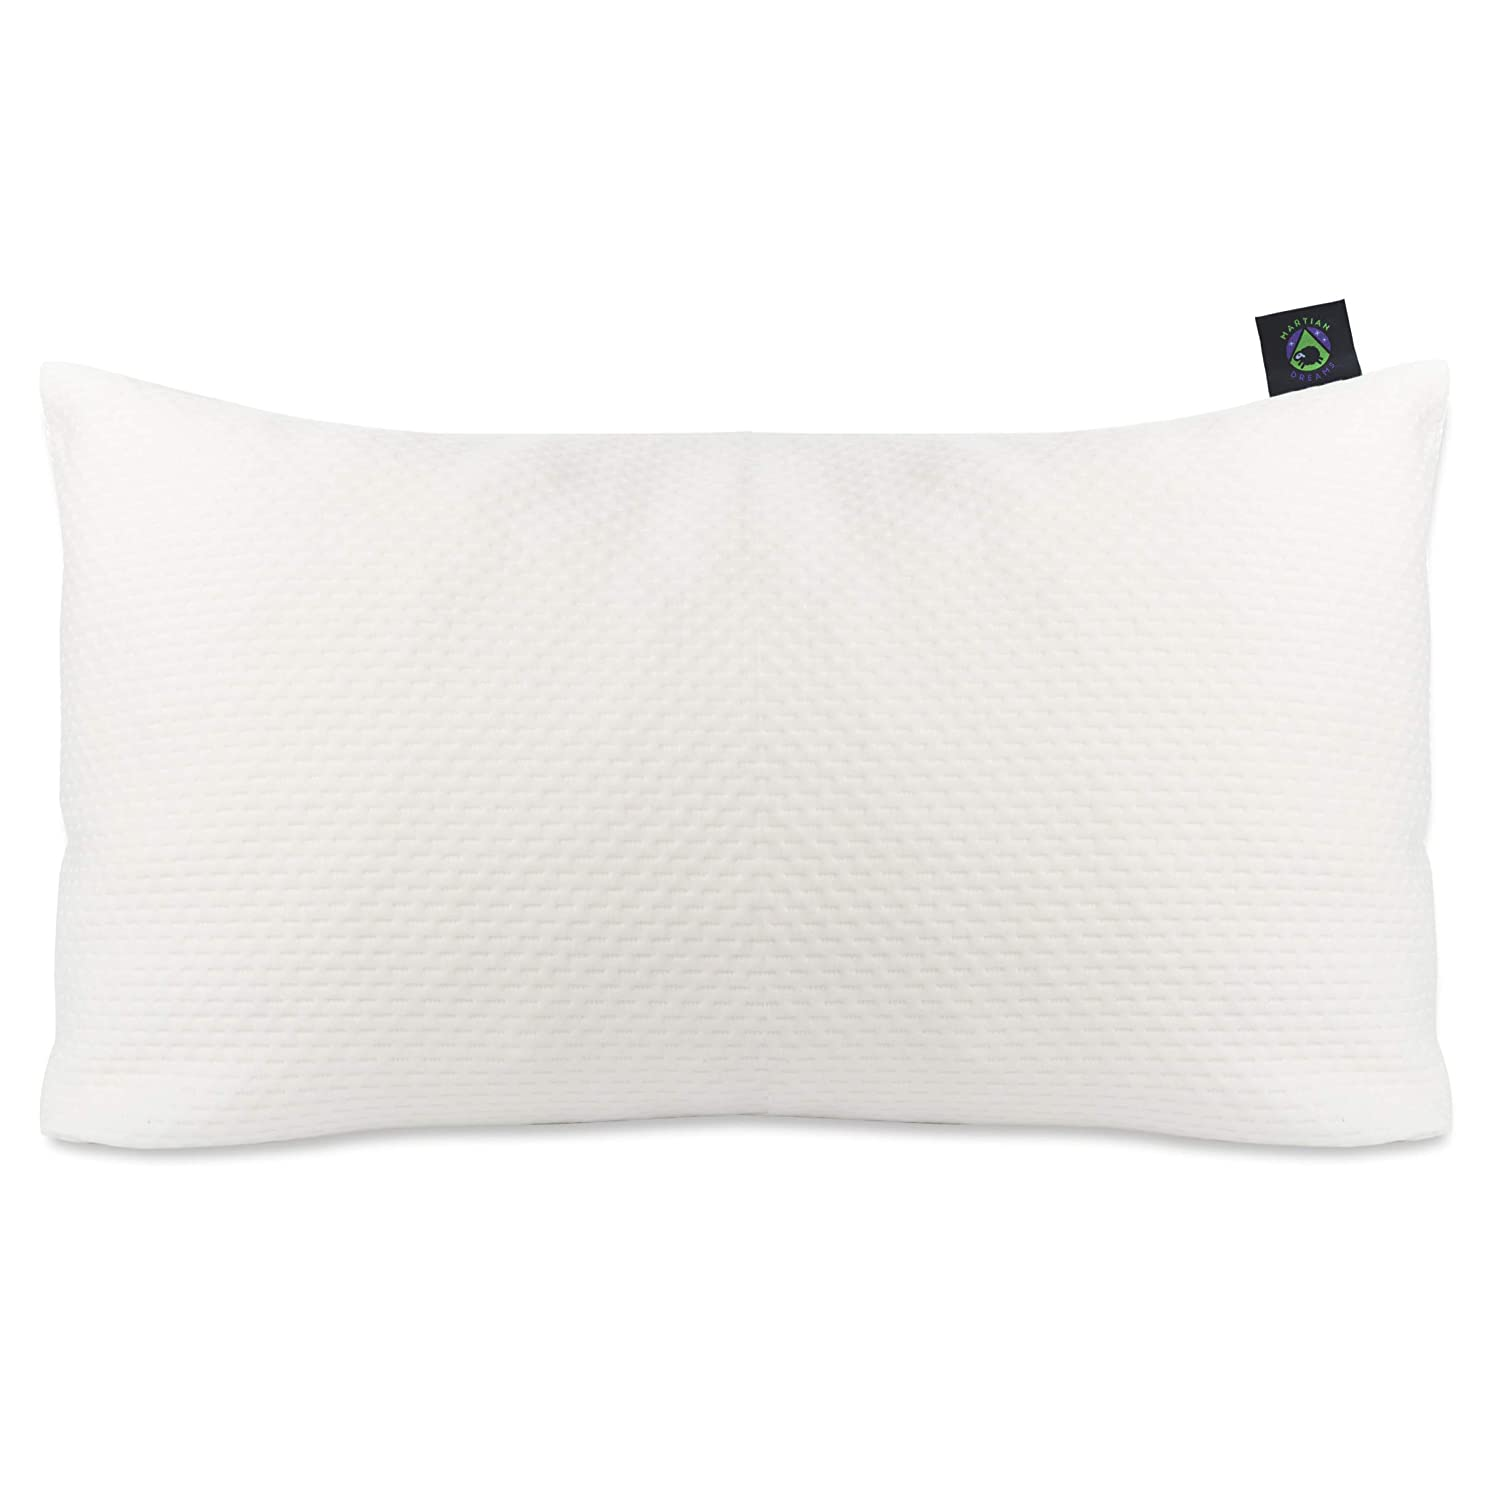 Luxury Shredded Memory Foam Pillow (Martian Dreams) - Adjustable Loft - Orthopaedic for Neck Pain - Hypoallergenic - made with Bamboo, with extra spare cover EDCAN Ltd